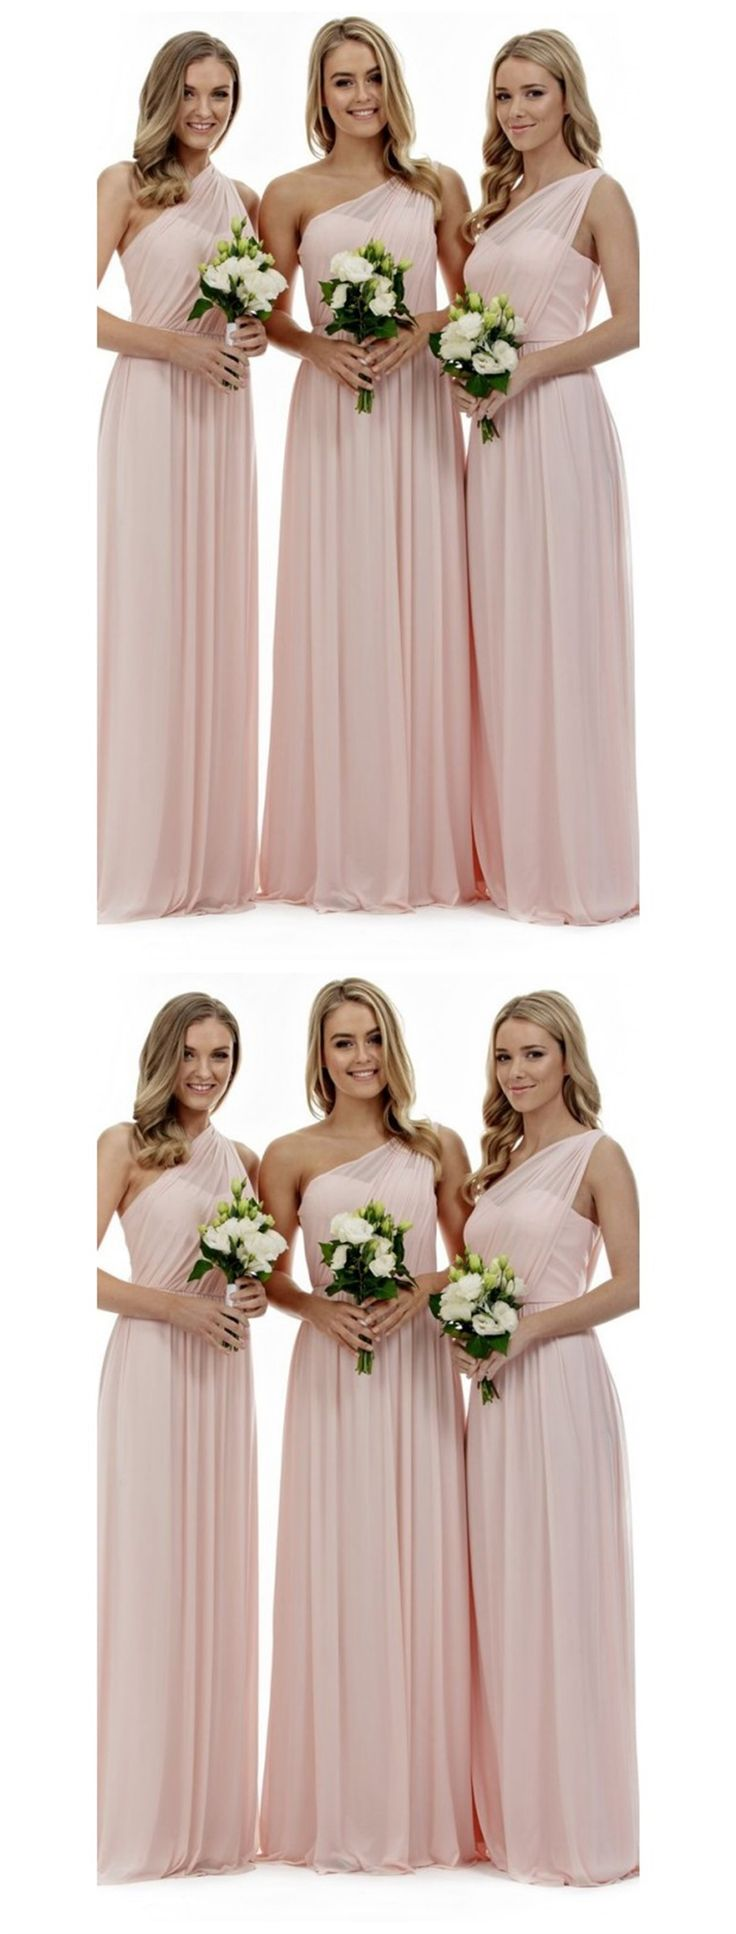 Best 25 one shoulder hair ideas on pinterest cute hairstyles blush pink bridesmaid dresses one shoulder bridesmaid dresses long bridesmaid dresses chiffon bridesmaid ombrellifo Images